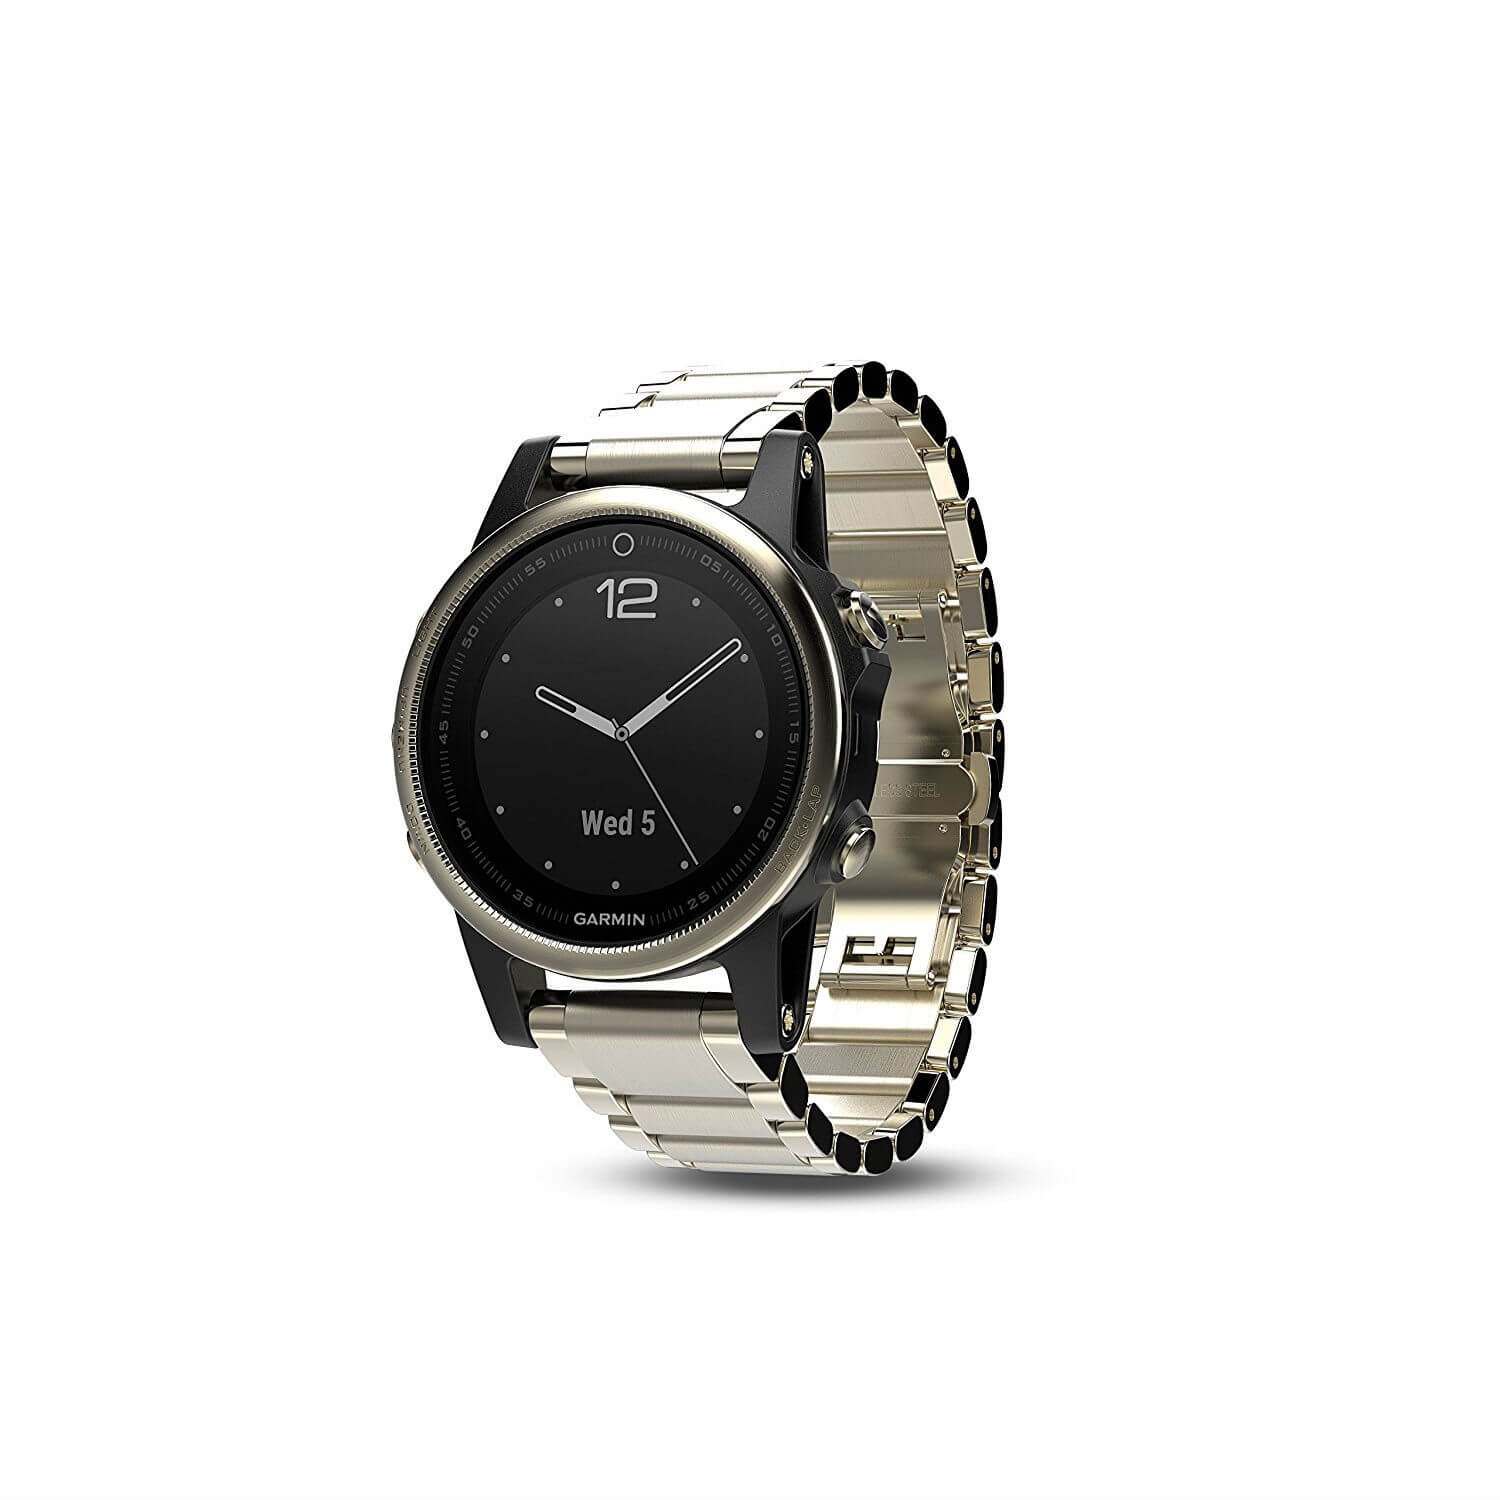 a r great sapphire watch garmin gps hr wired fenix review